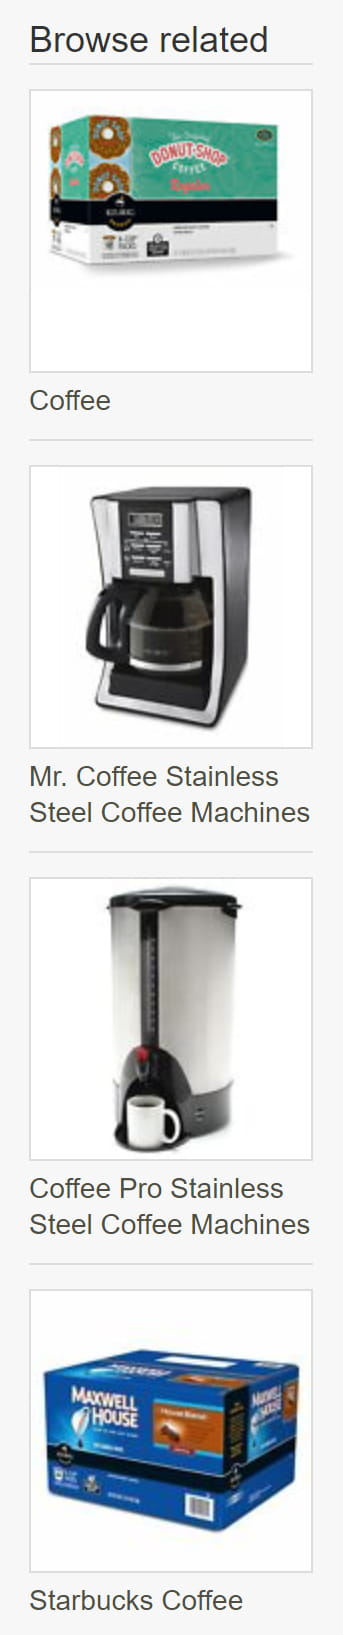 "Related items for ""Coffee"""